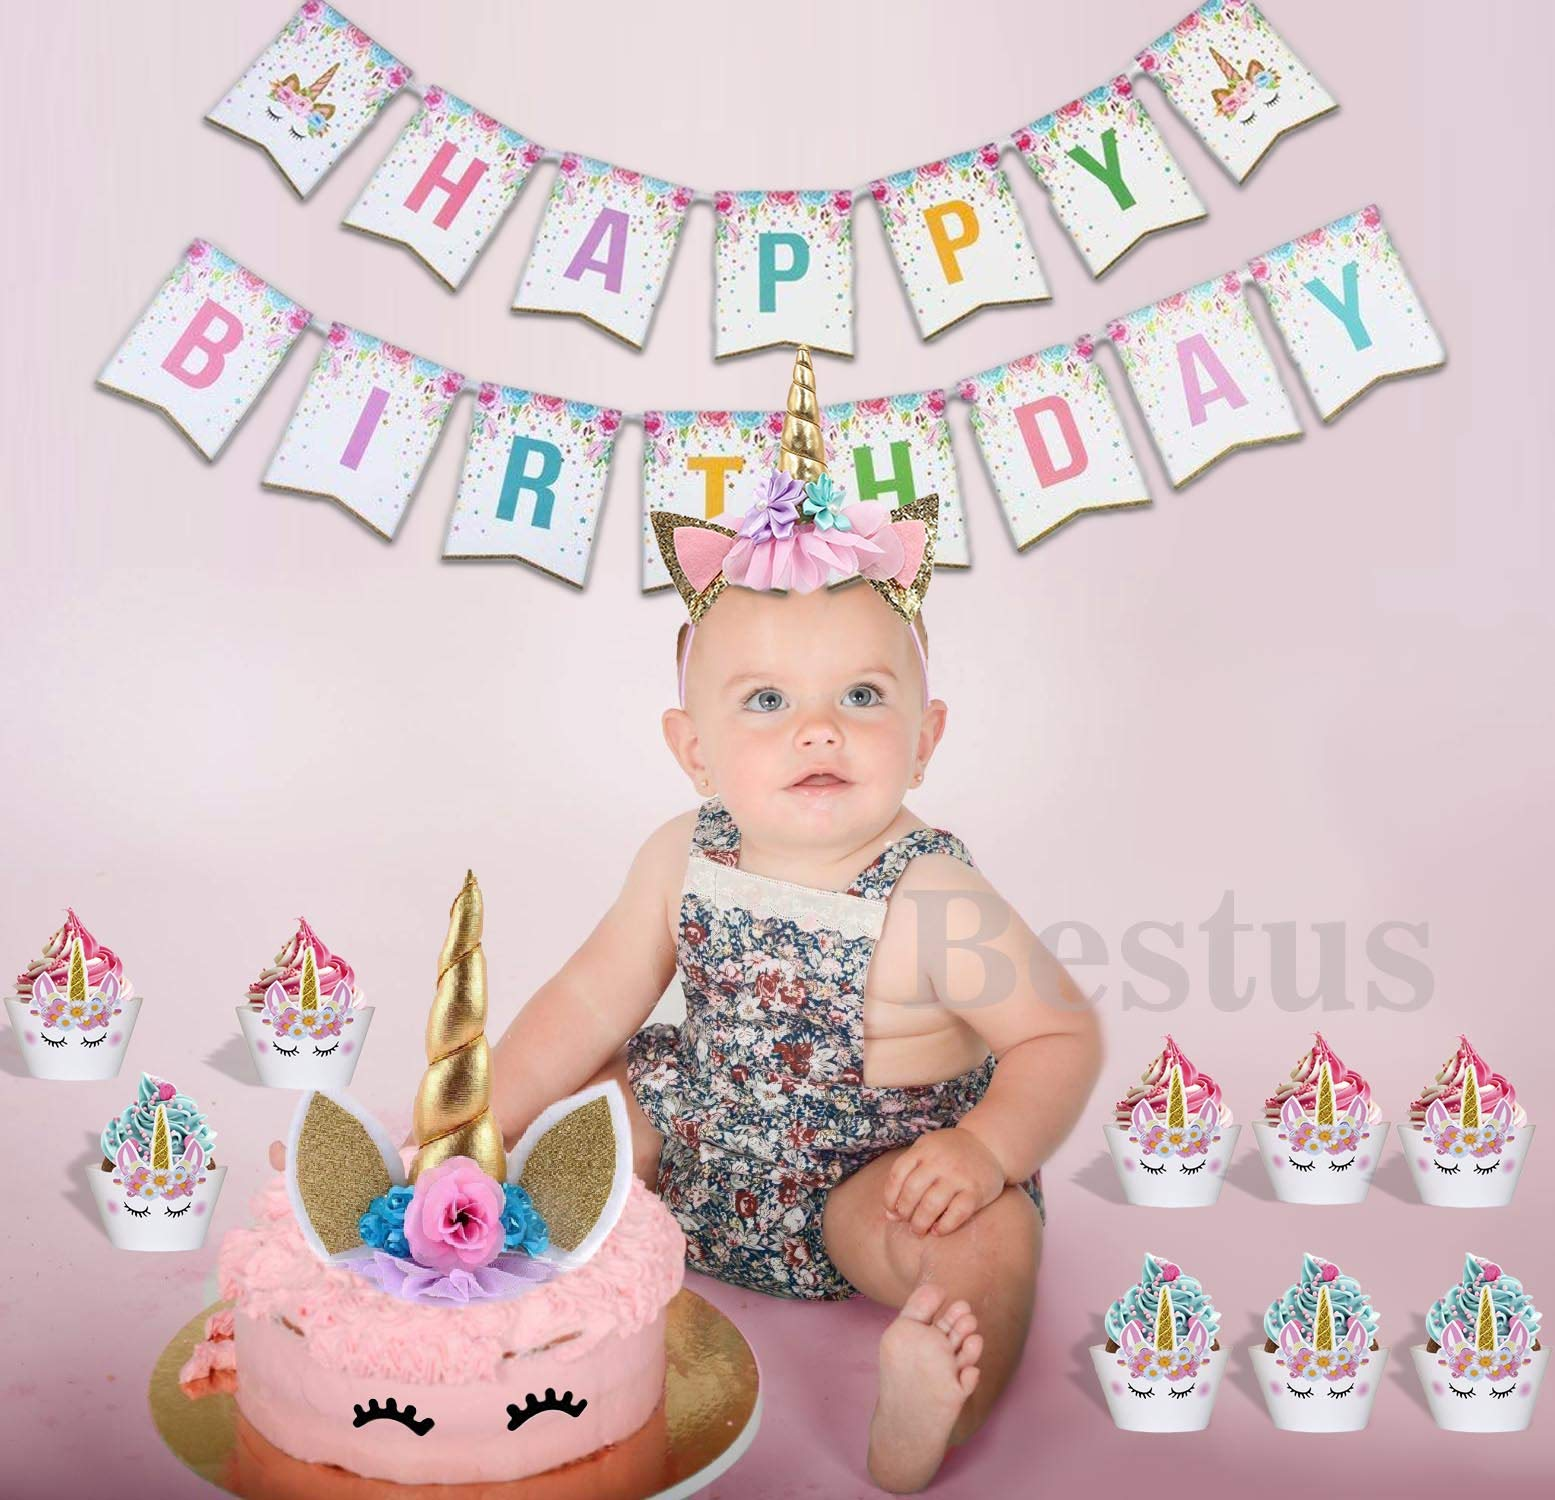 Bestus (29 pack) Unicorn Cake Topper with Eyelashes, Headband, Cupcake Wrappers and Happy Birthday Banner./Unicorn Party Supplies,for Birthday Party, Baby Shower, Kids Party Decoration 9